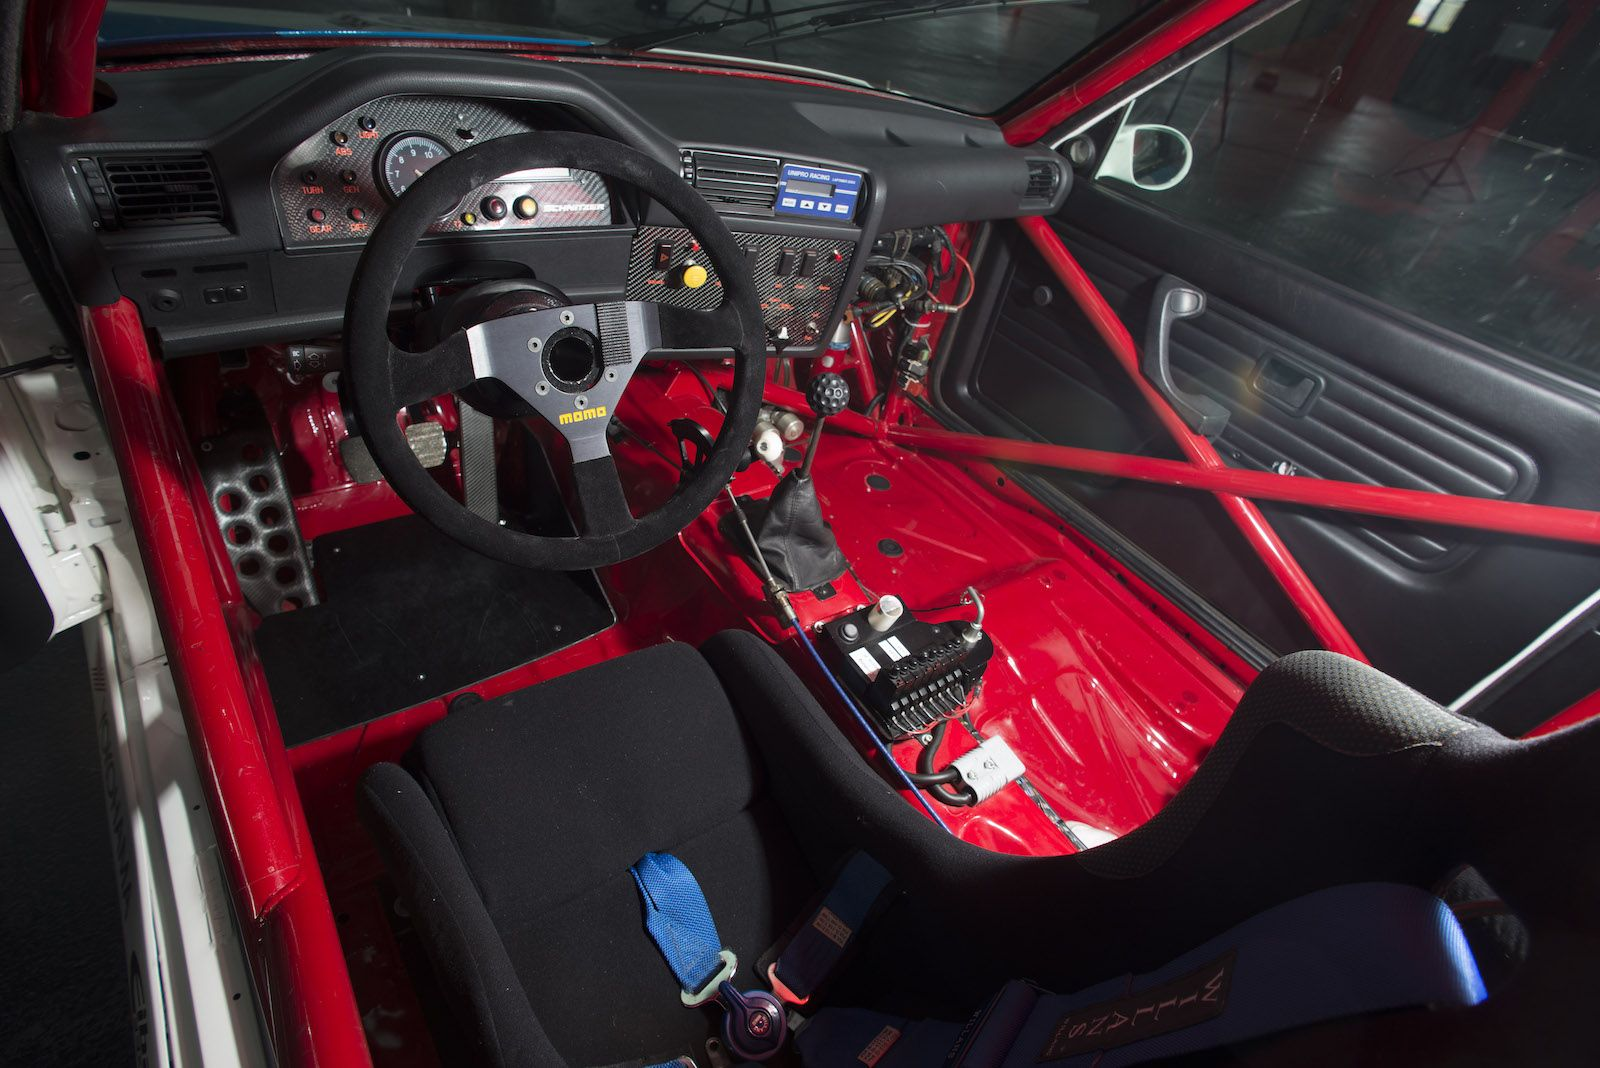 bmw m6 gt3 and bmw e30 m3 dtm cars and anything fast pinterest bmw e30 m3 e30 and bmw m6. Black Bedroom Furniture Sets. Home Design Ideas